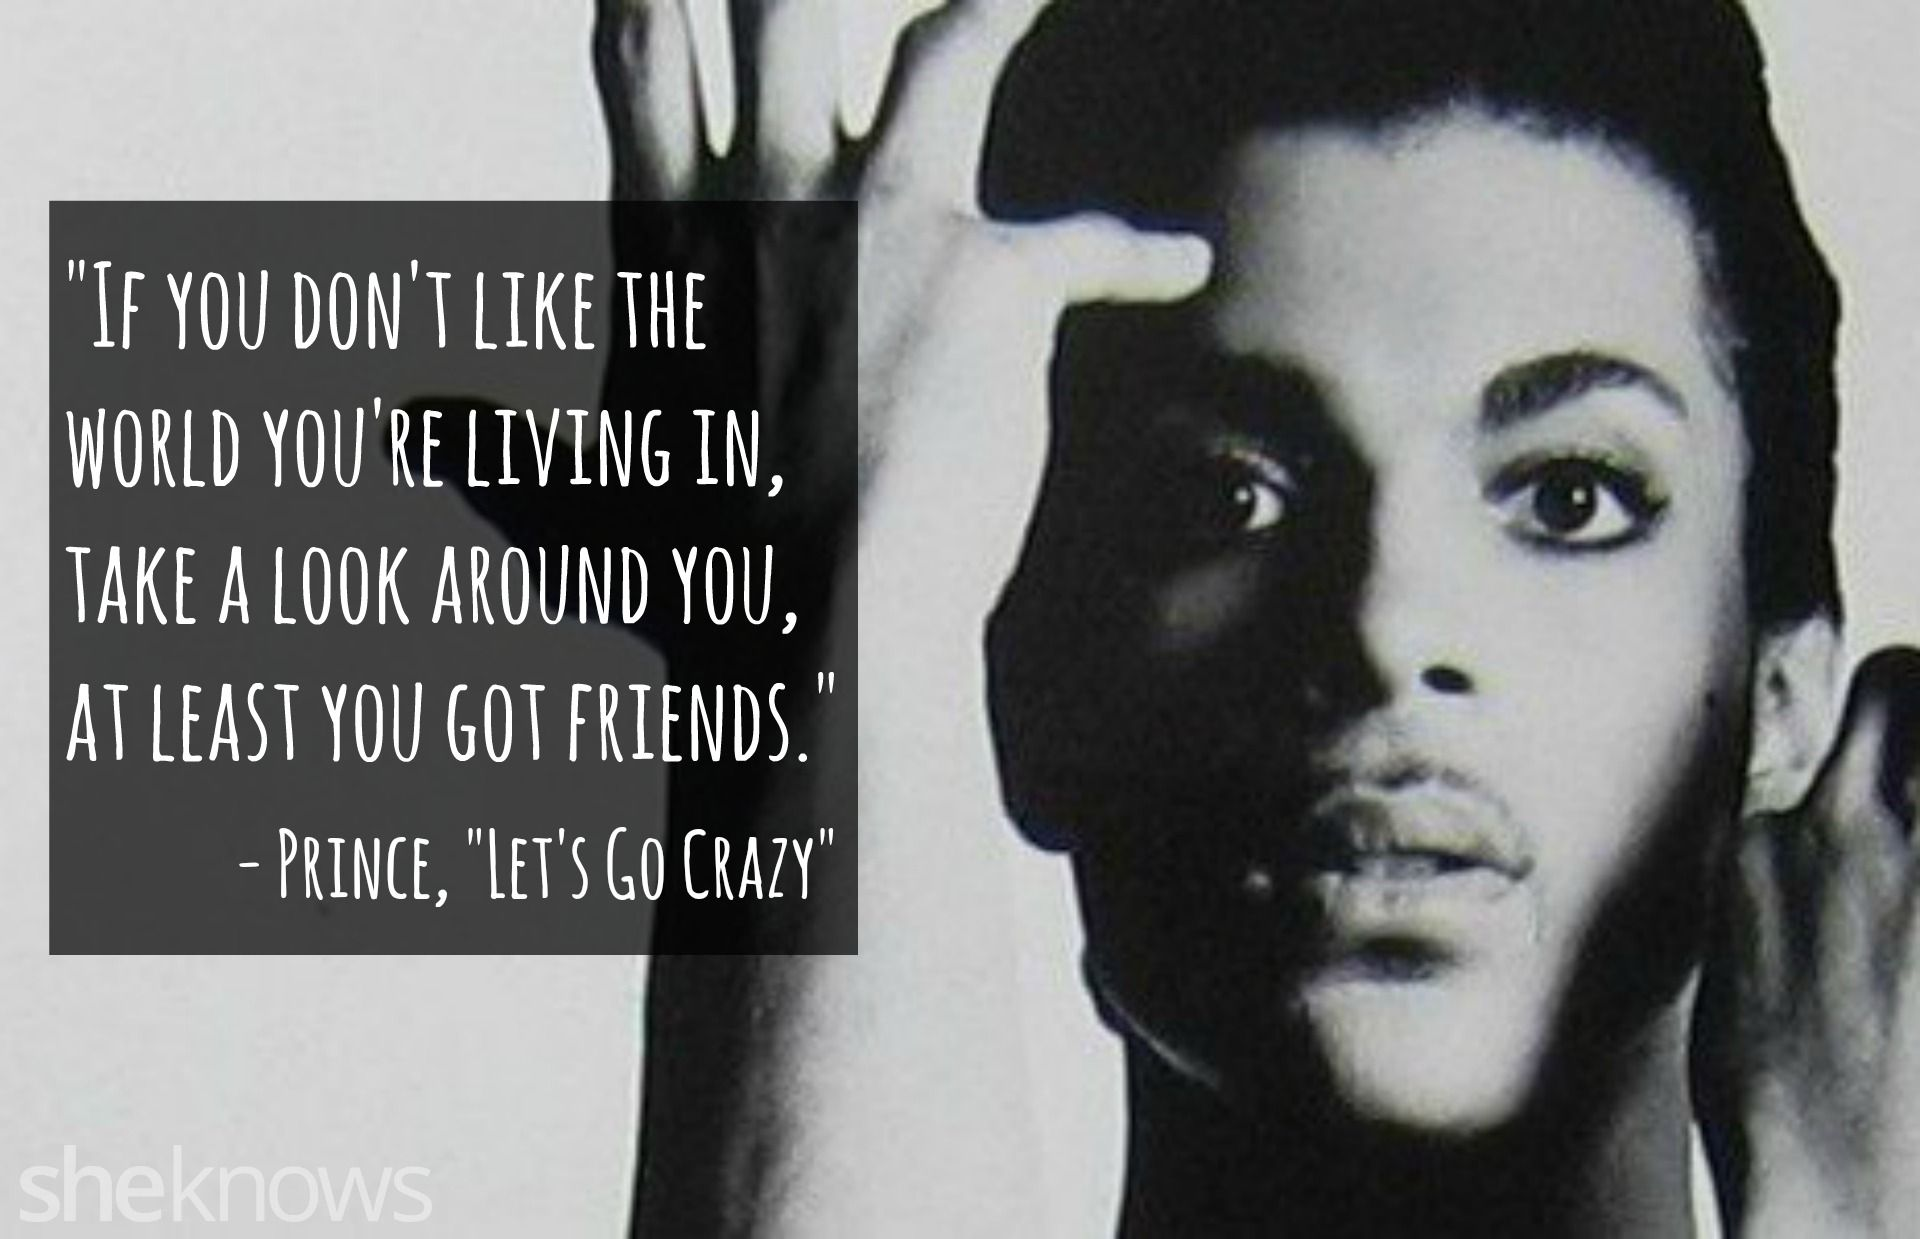 top 10 prince lyrics quotes from songs - Google Search